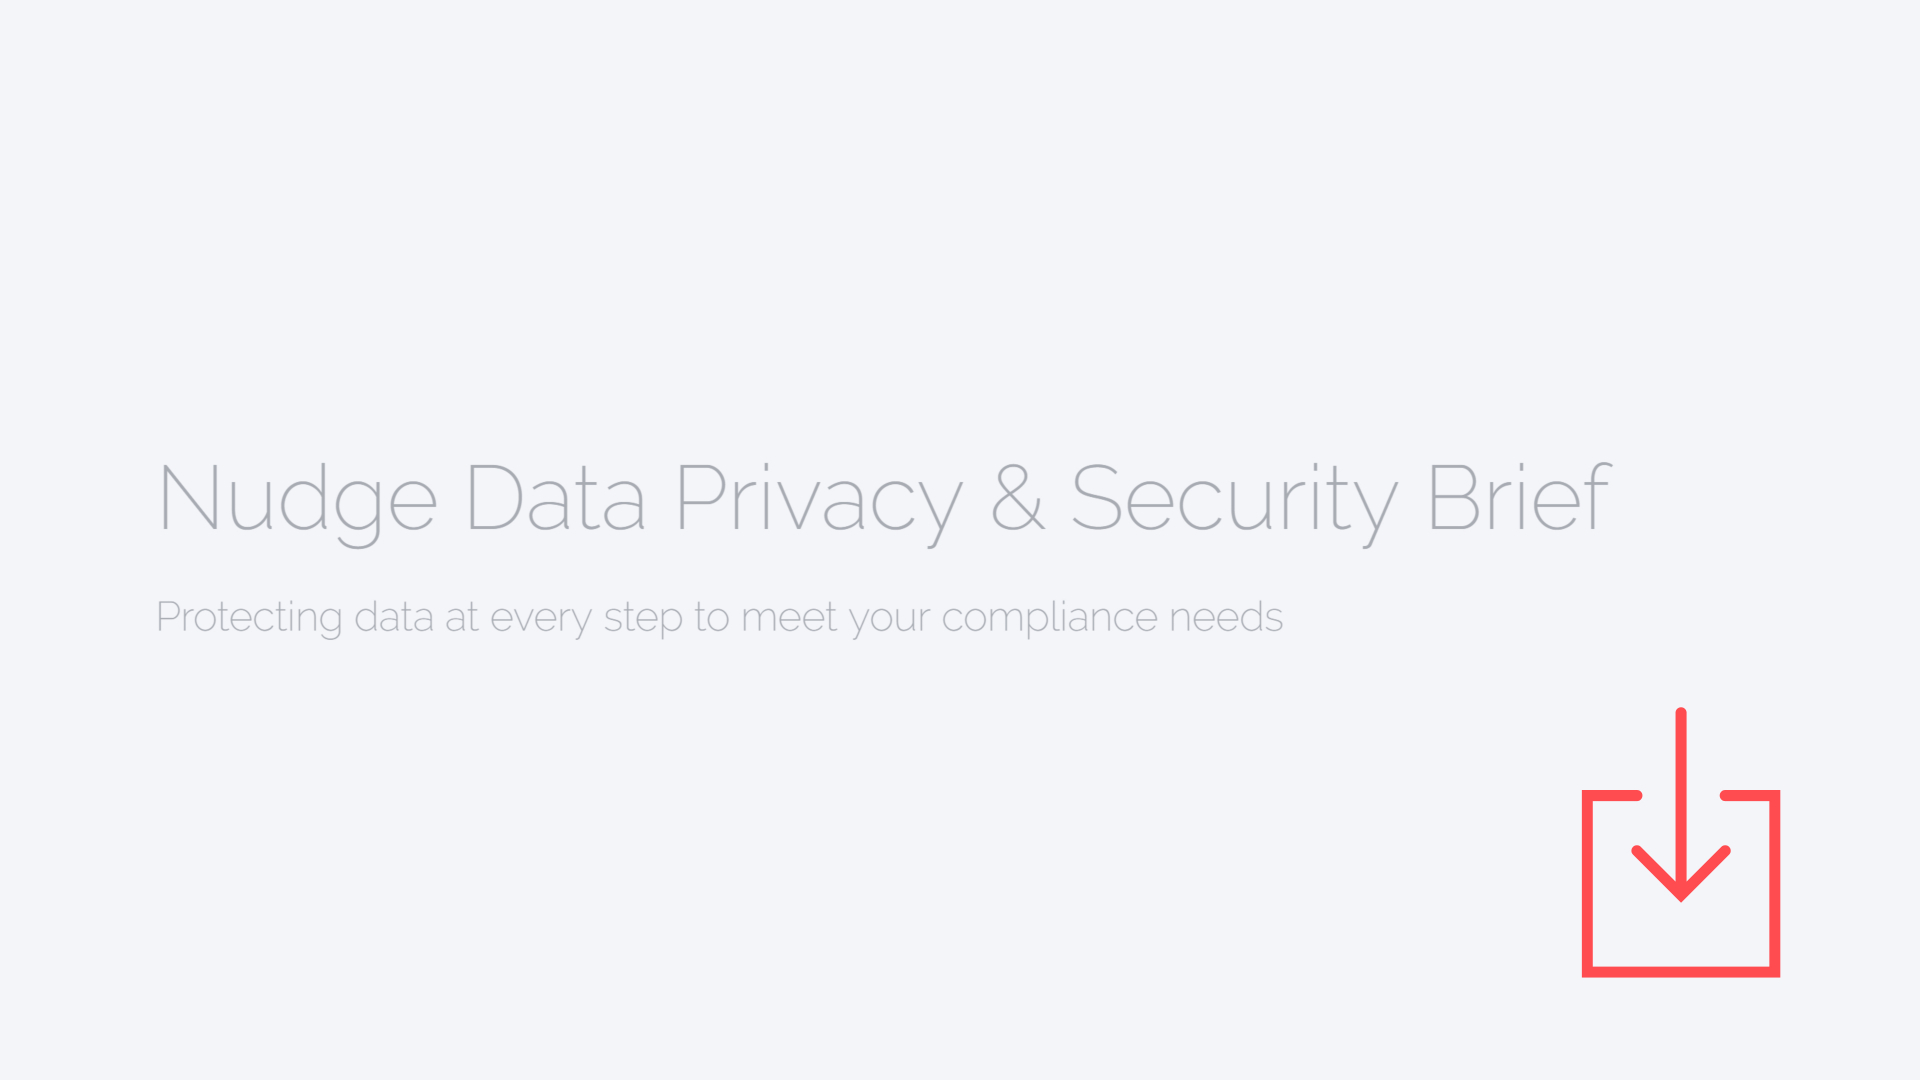 nudge data privacy and security brief